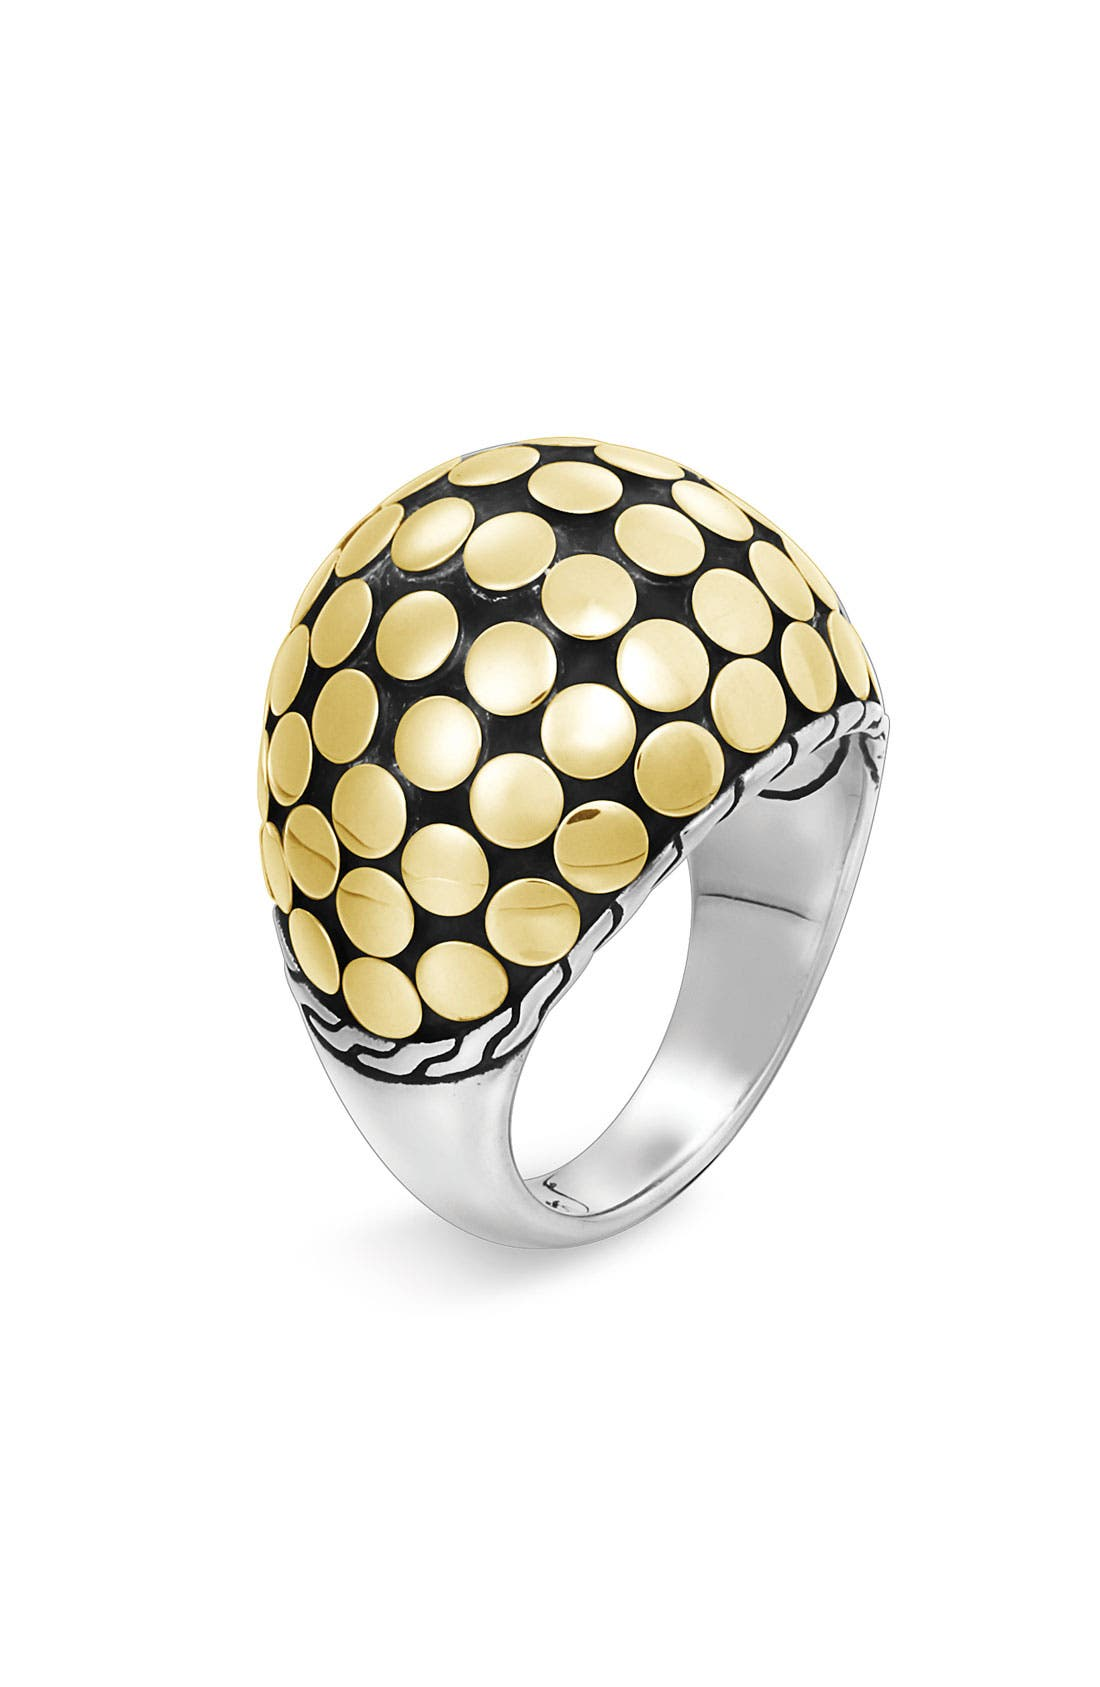 Main Image - John Hardy 'Dot Gold' Dome Ring